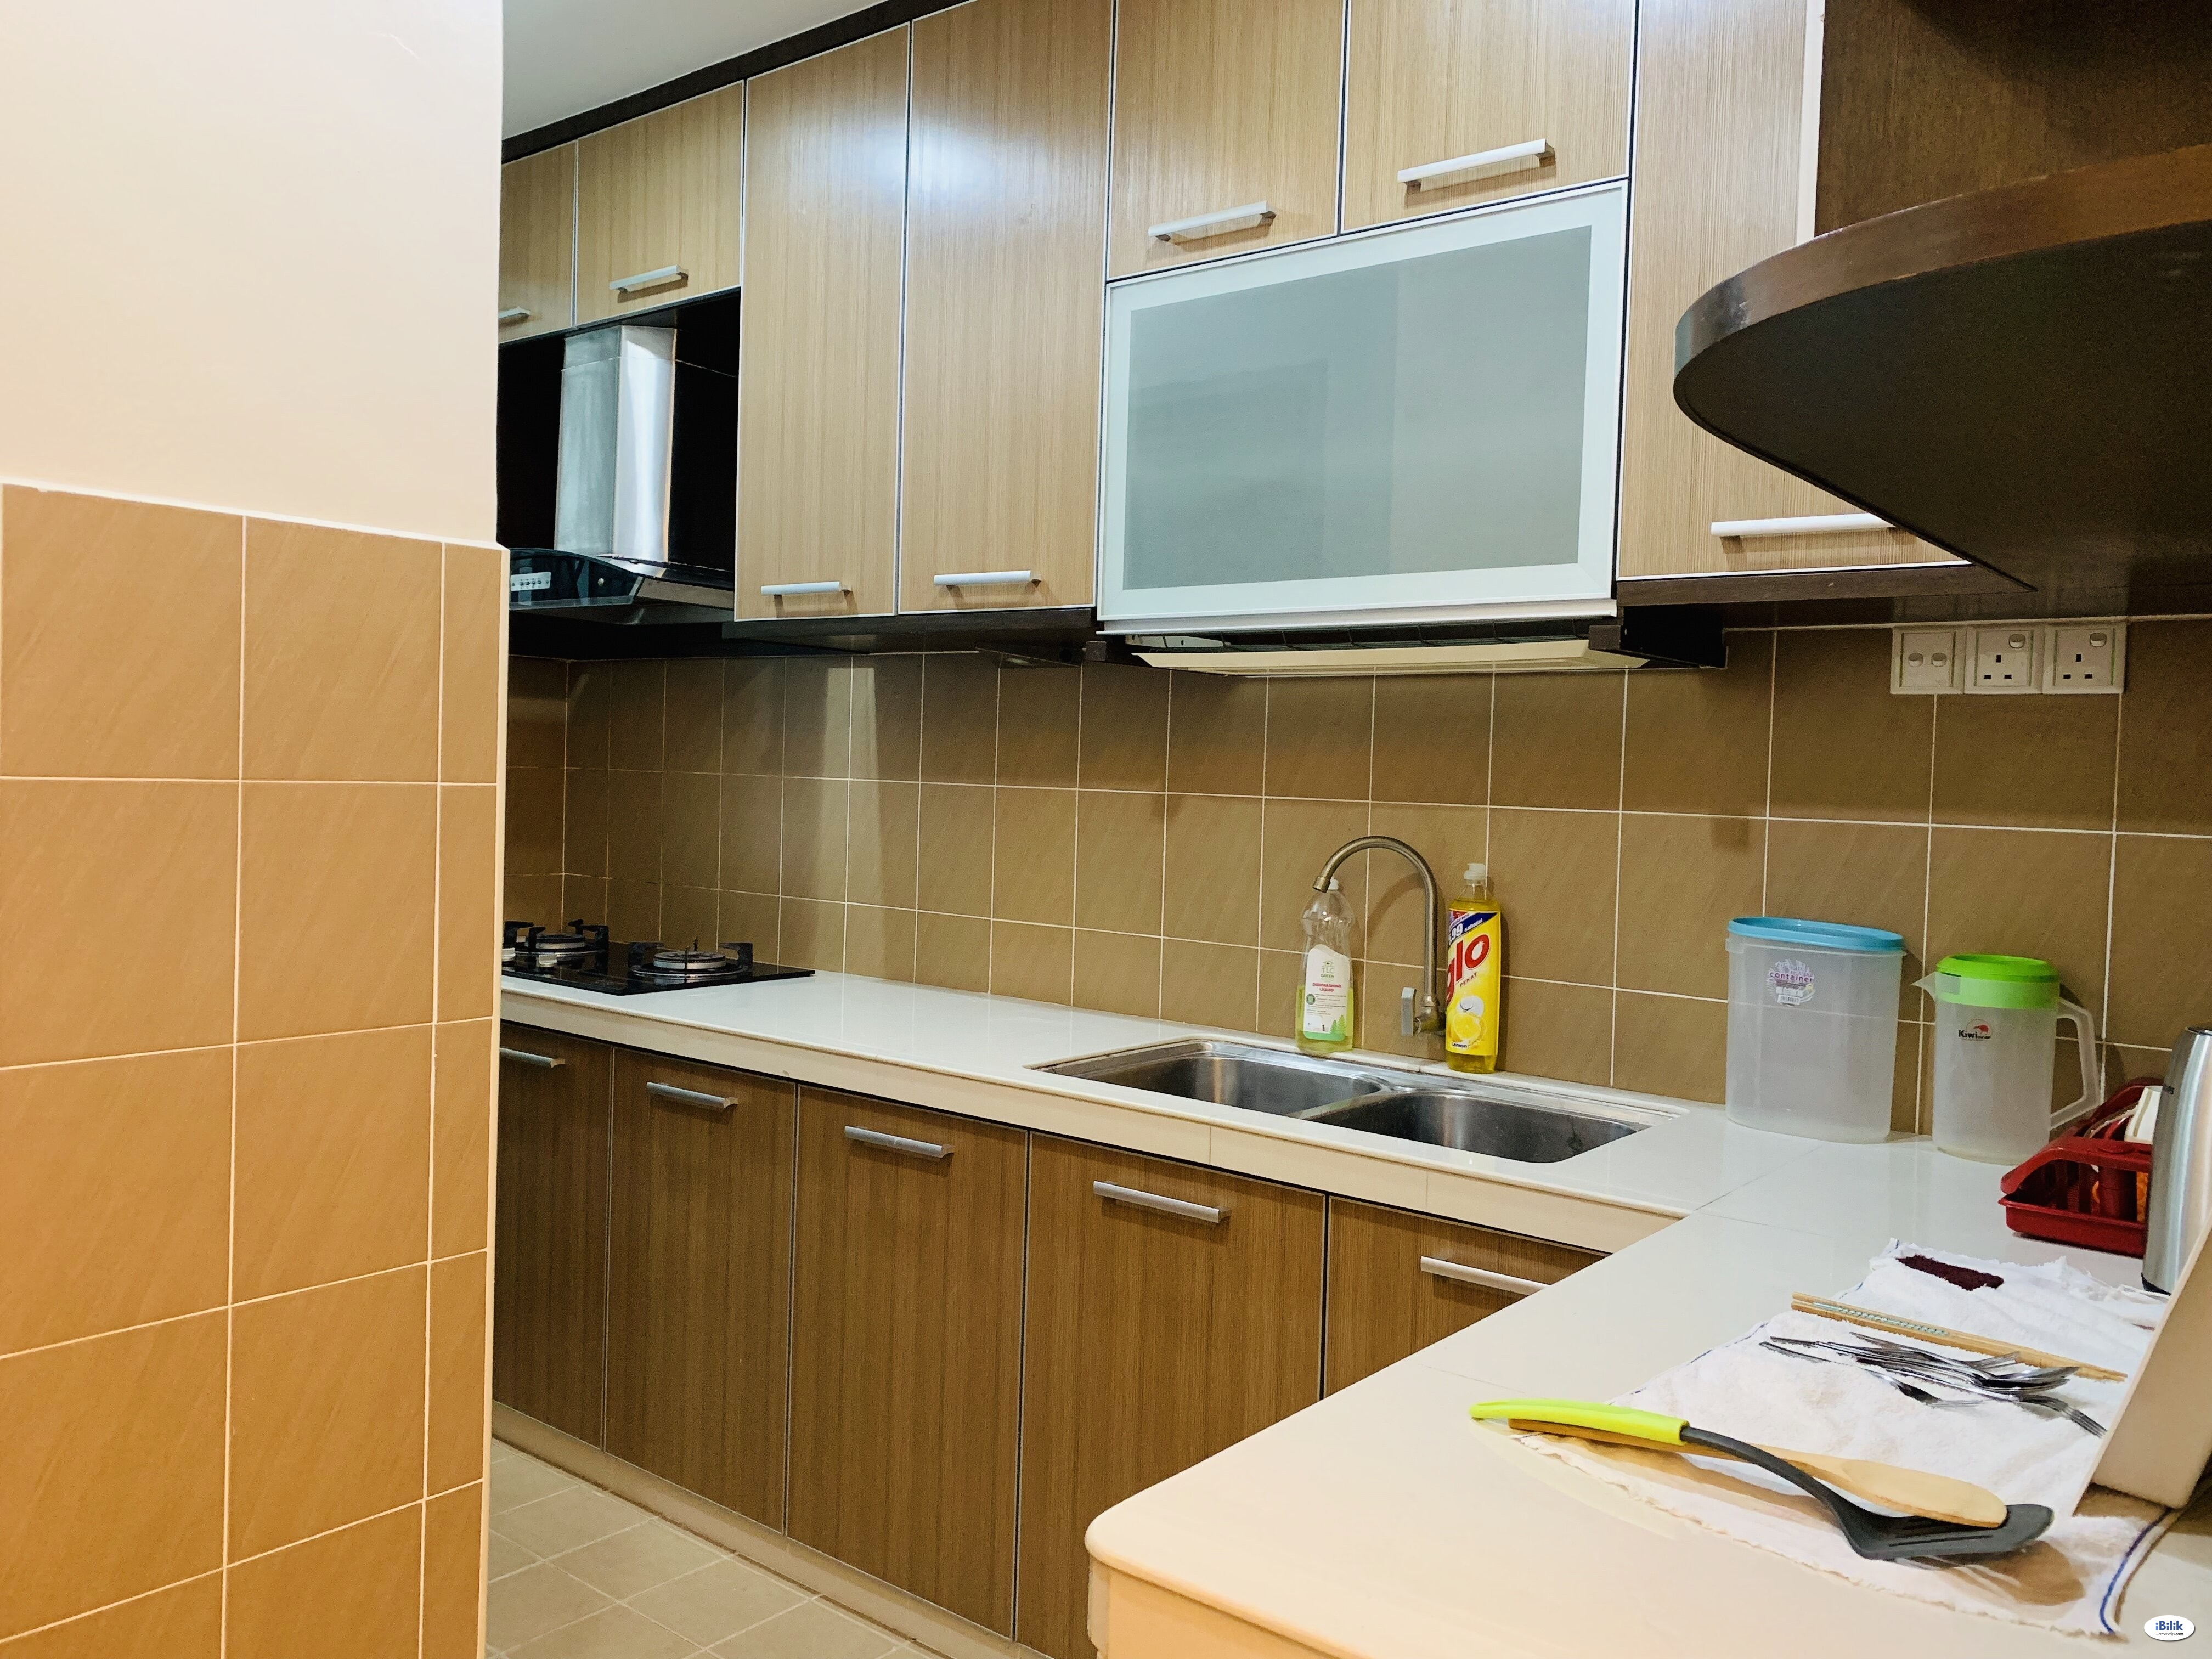 Furnished Single Room at Cassia, Butterworth in April